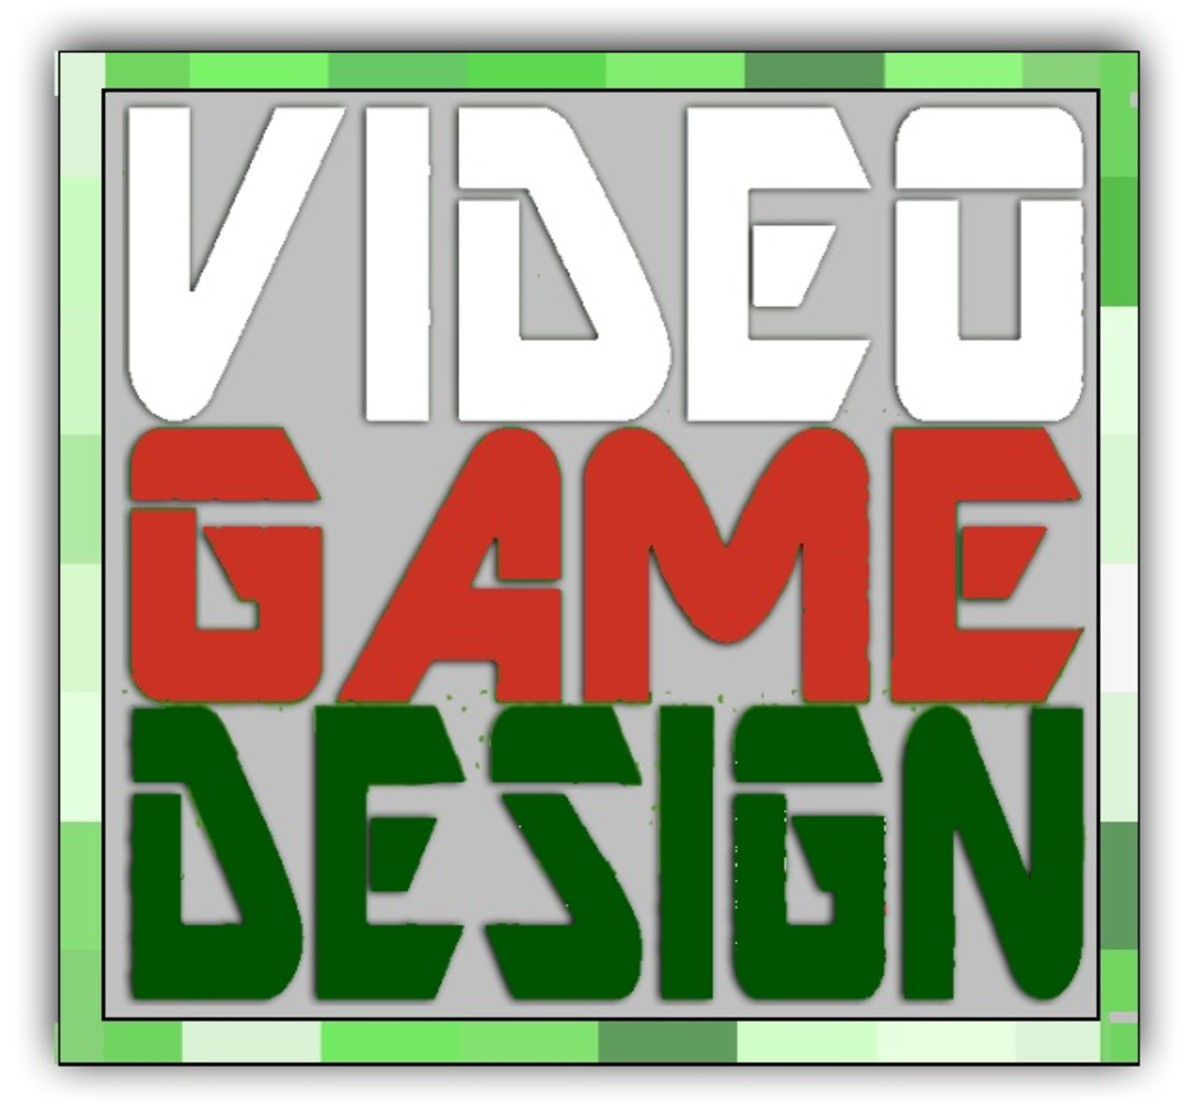 Game Design college thing